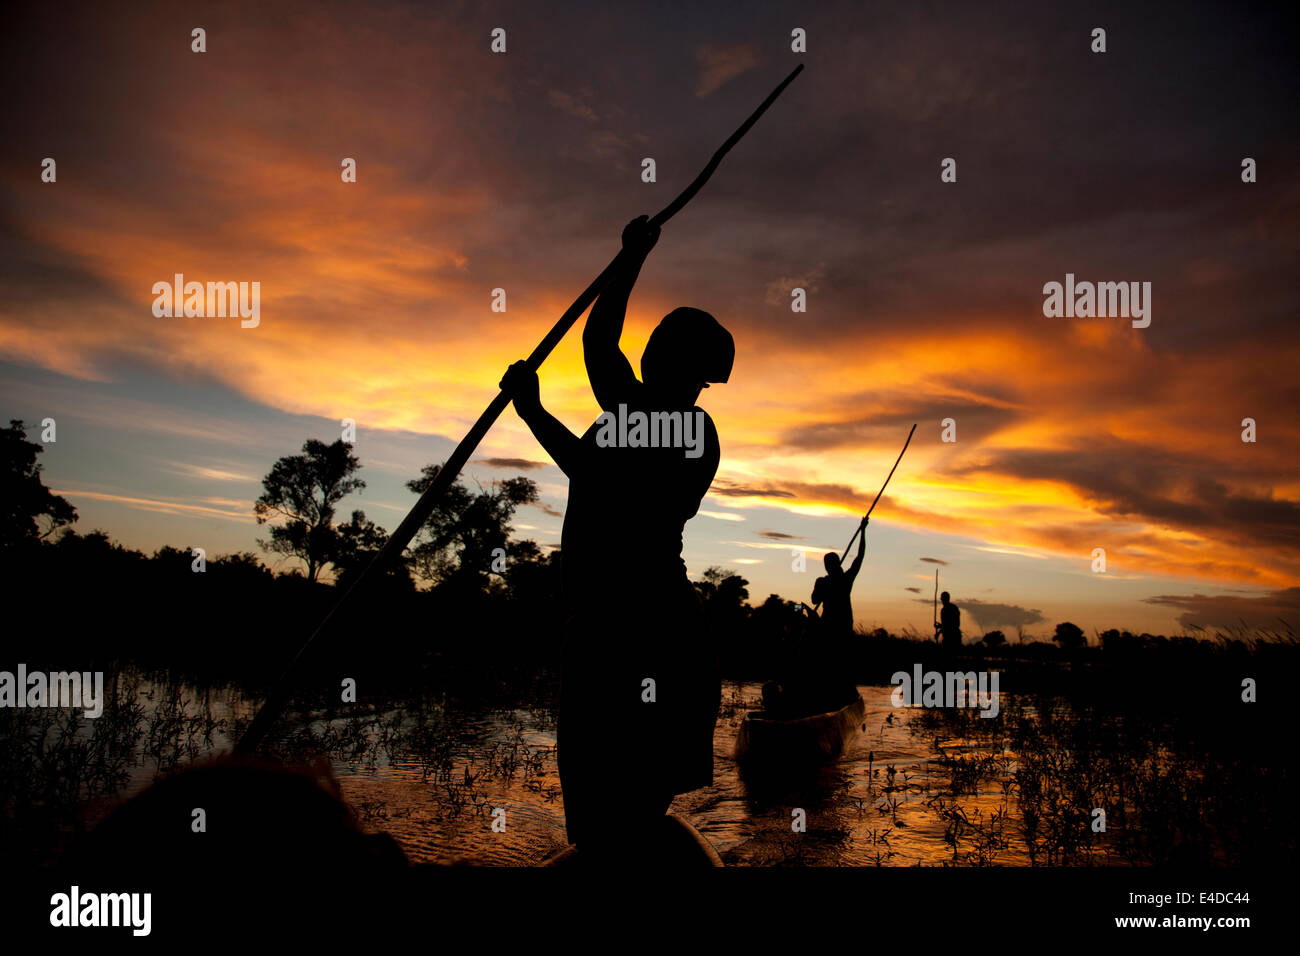 Poler on a traditional mokoro boat in the Okavango Delta at sunset, Botswana, Africa - Stock Image